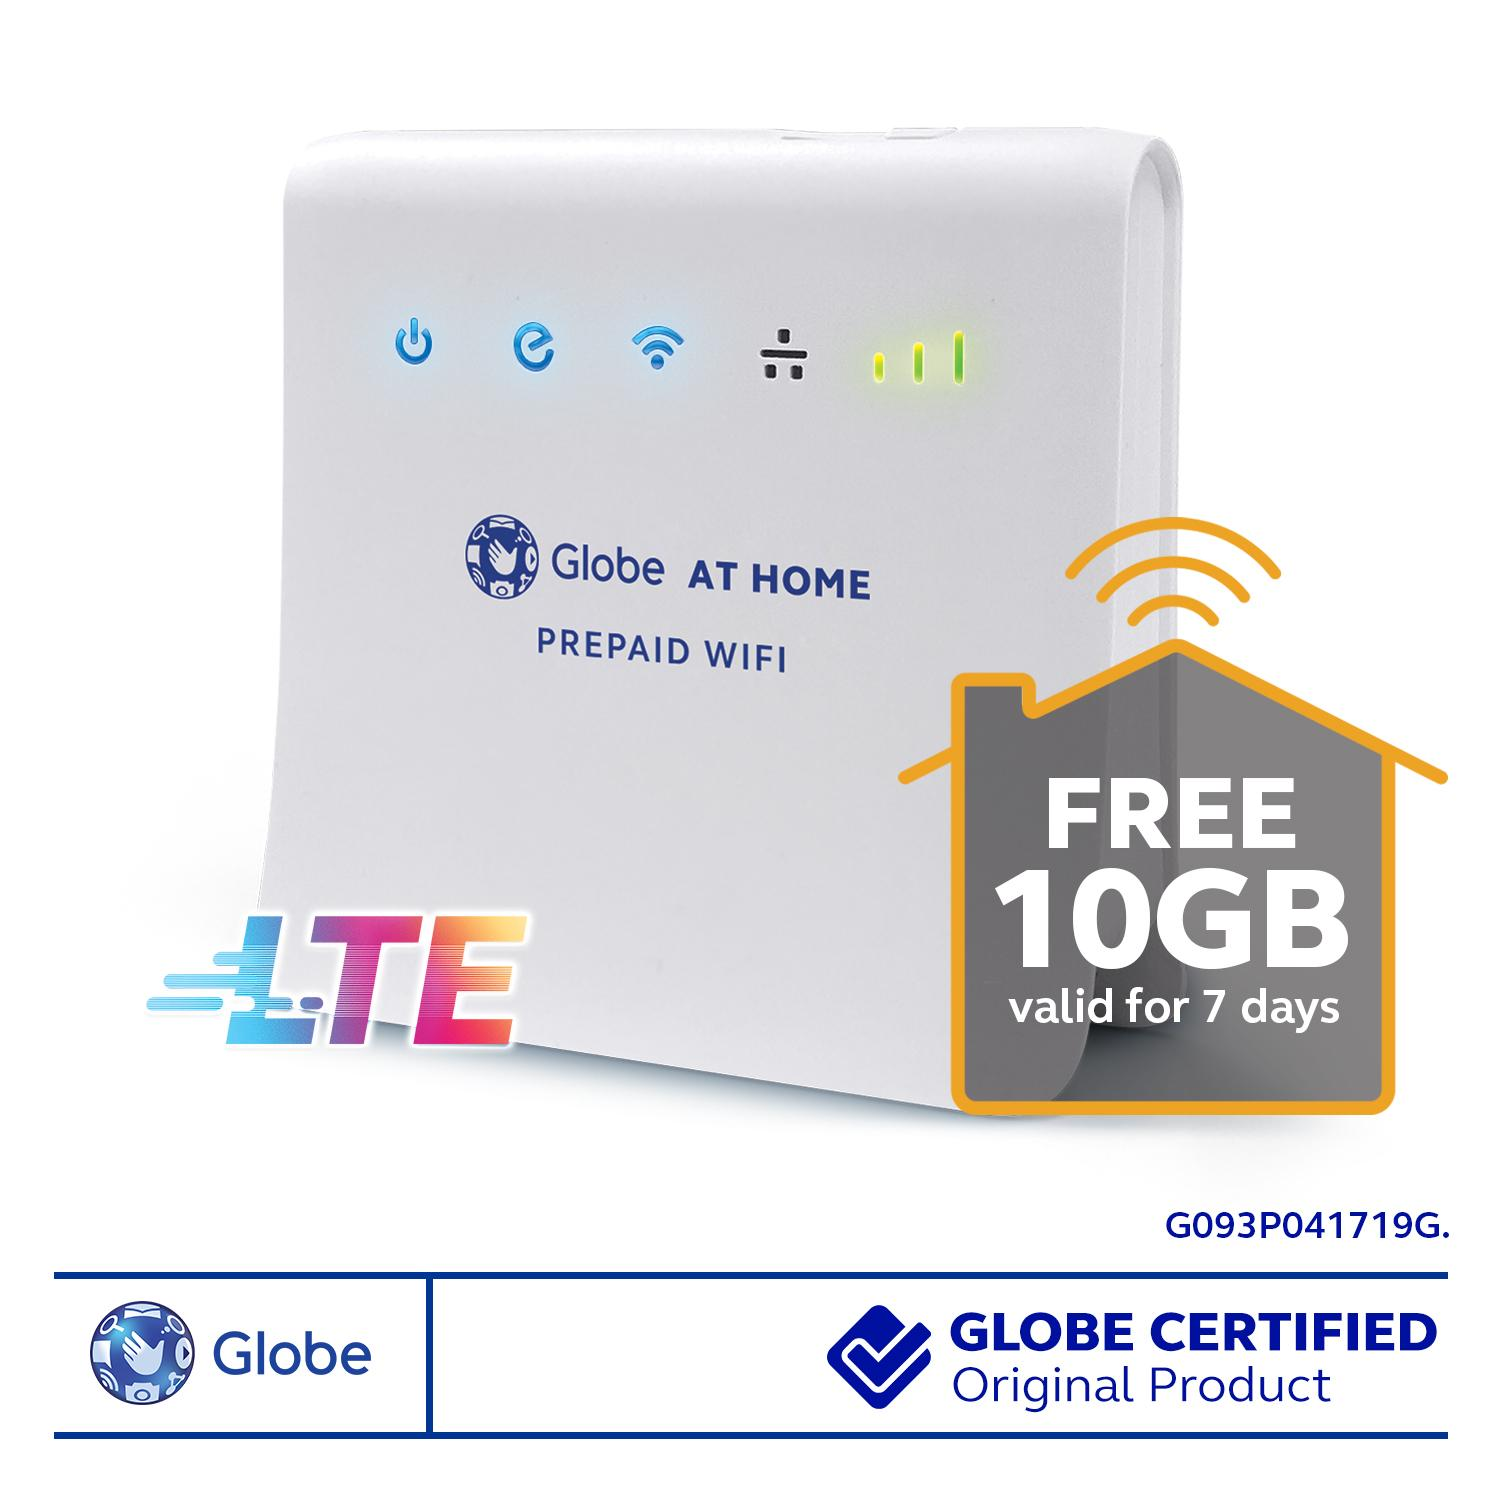 Globe At Home Prepaid Home Wifi - Youwin Modem By Globe Telecom, Inc.